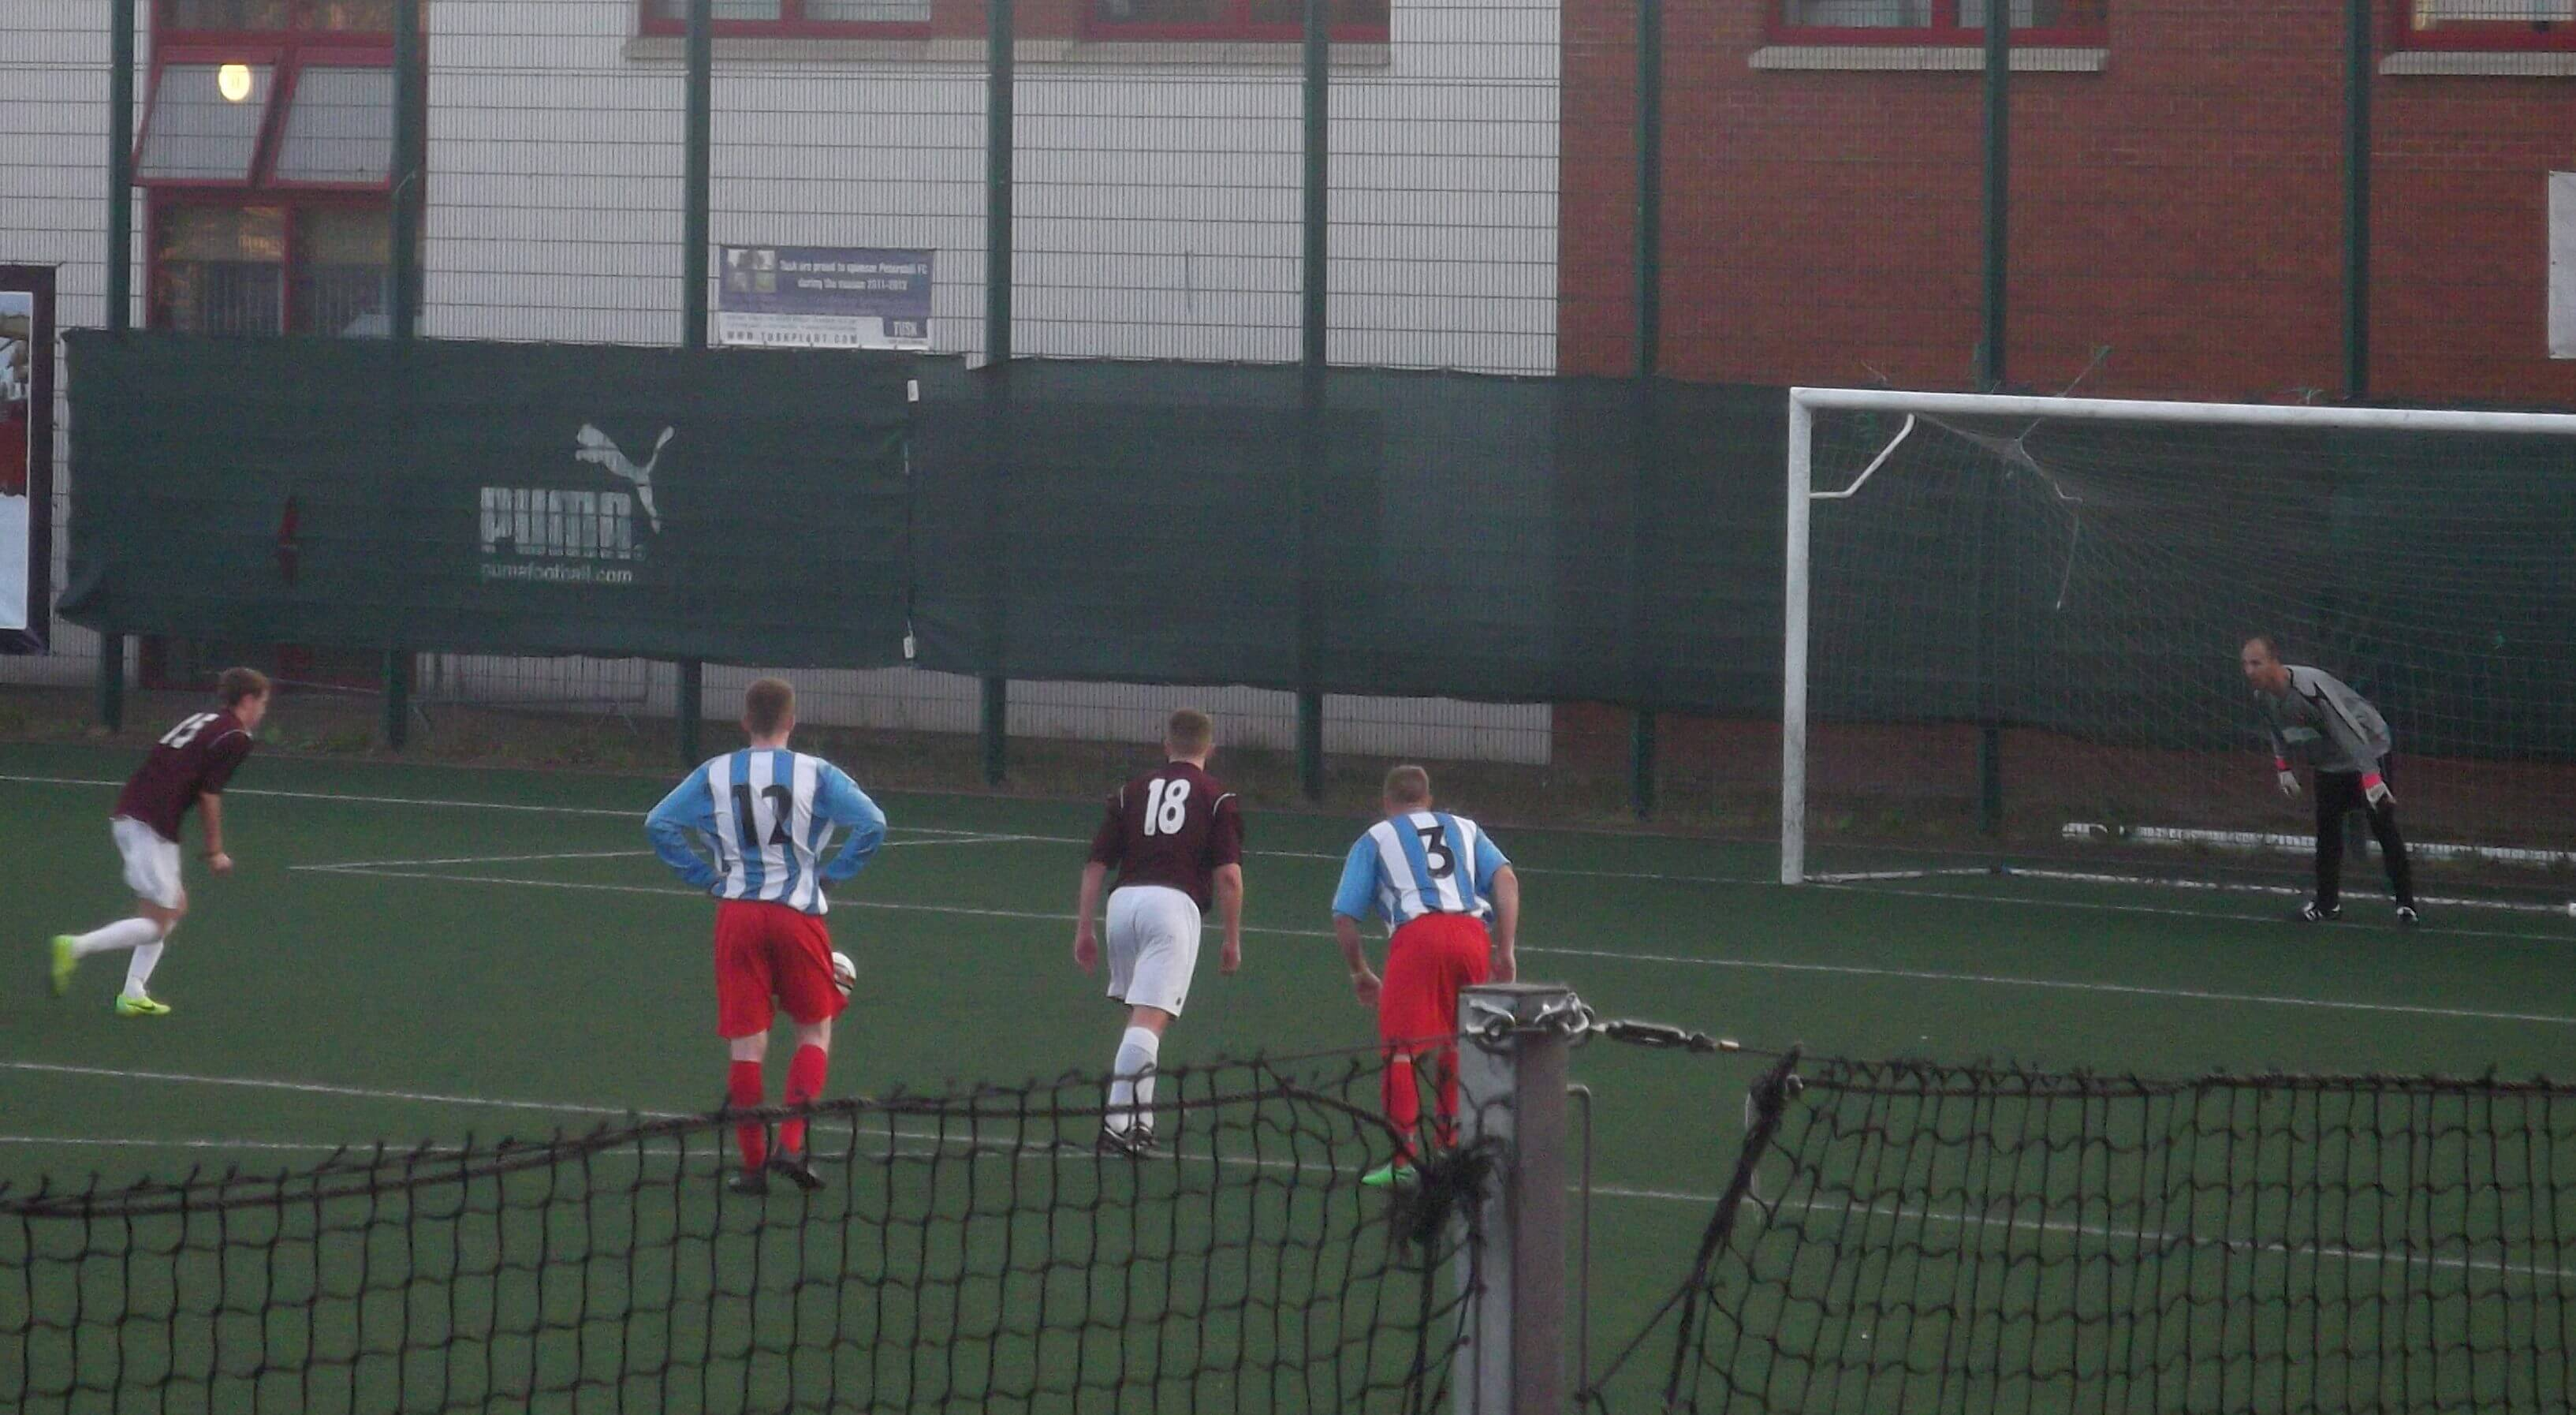 Petershill v Larkhall Thistle 1 - penalty 2